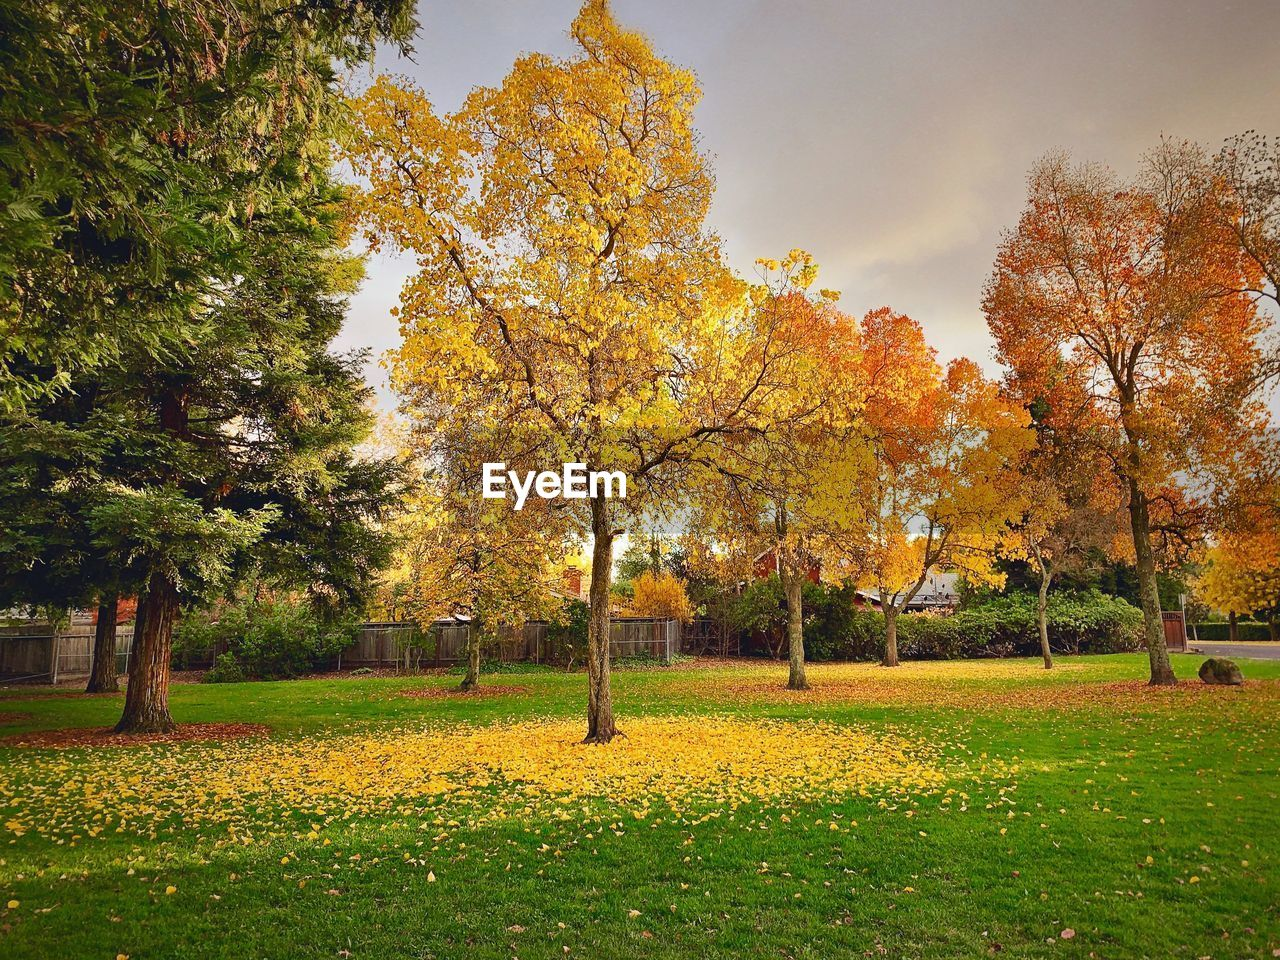 tree, plant, autumn, change, beauty in nature, grass, nature, orange color, sky, growth, land, field, scenics - nature, tranquility, tranquil scene, park, no people, day, green color, outdoors, fall